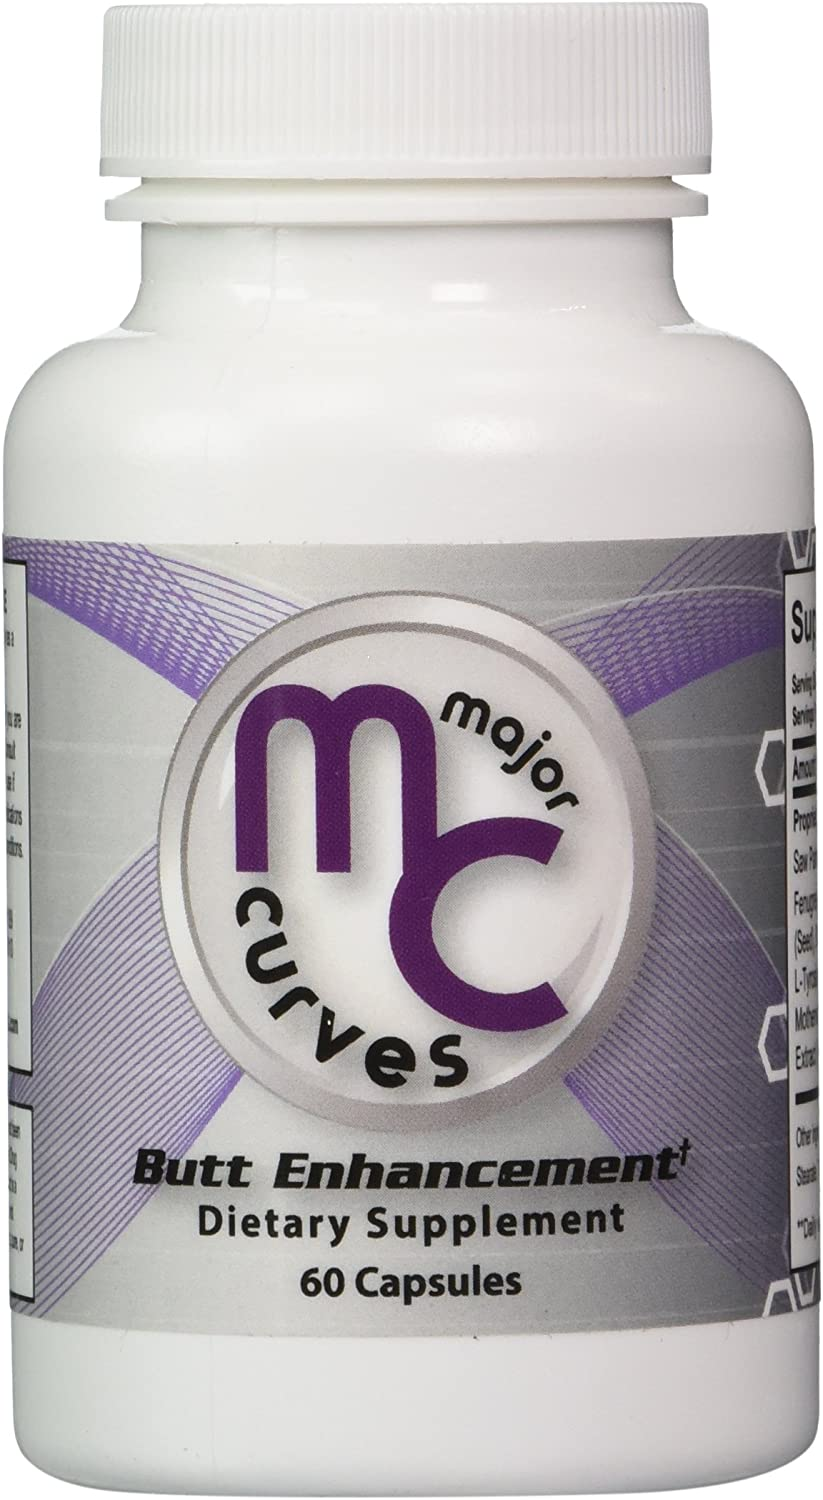 Major Curves Butt Enhancement and Enlargement Capsules